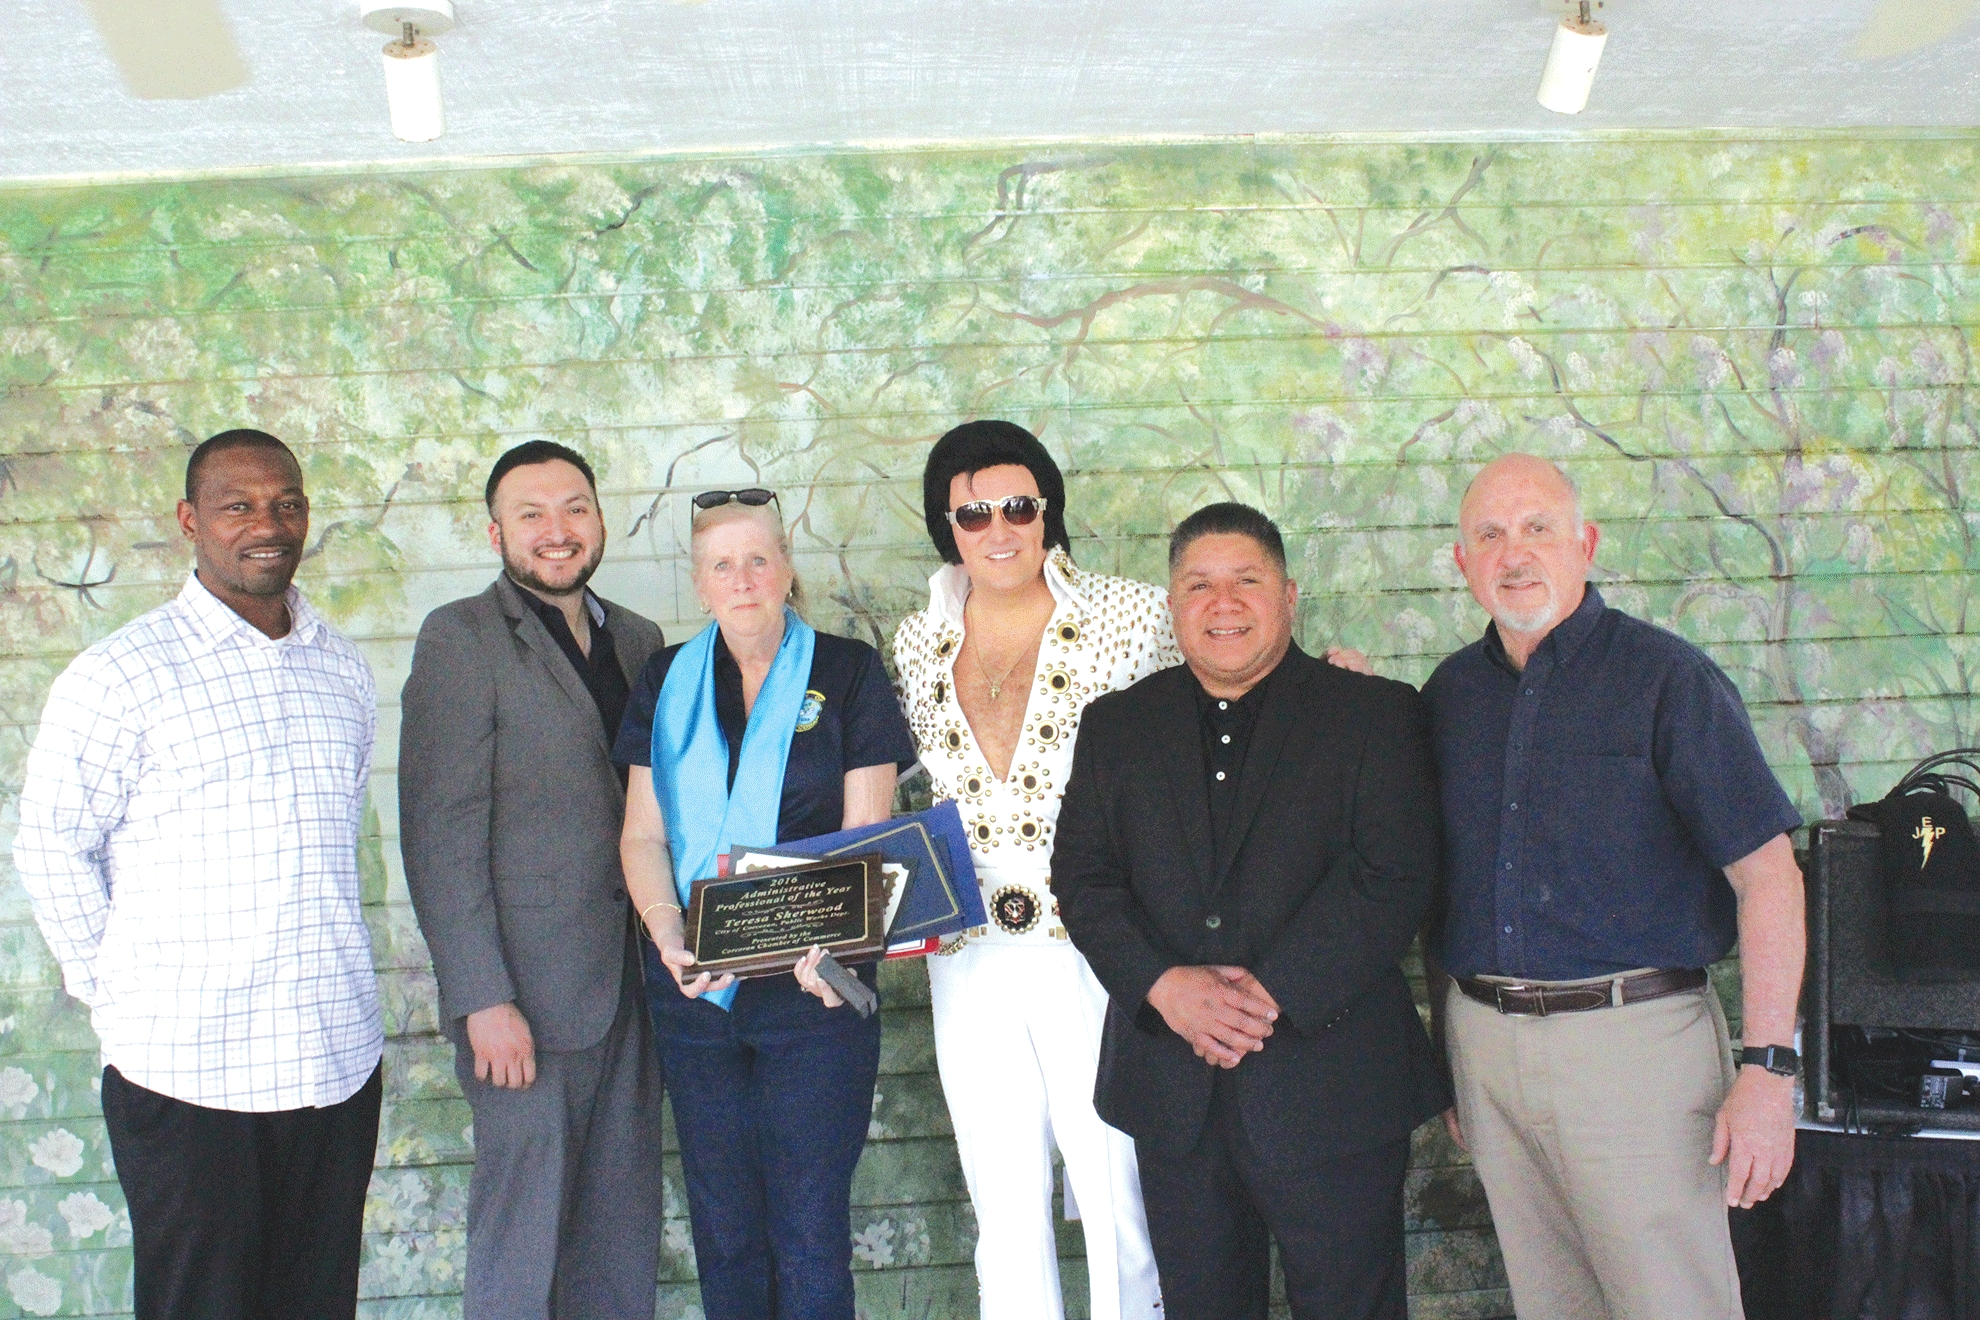 Elvis attends administrative luncheon